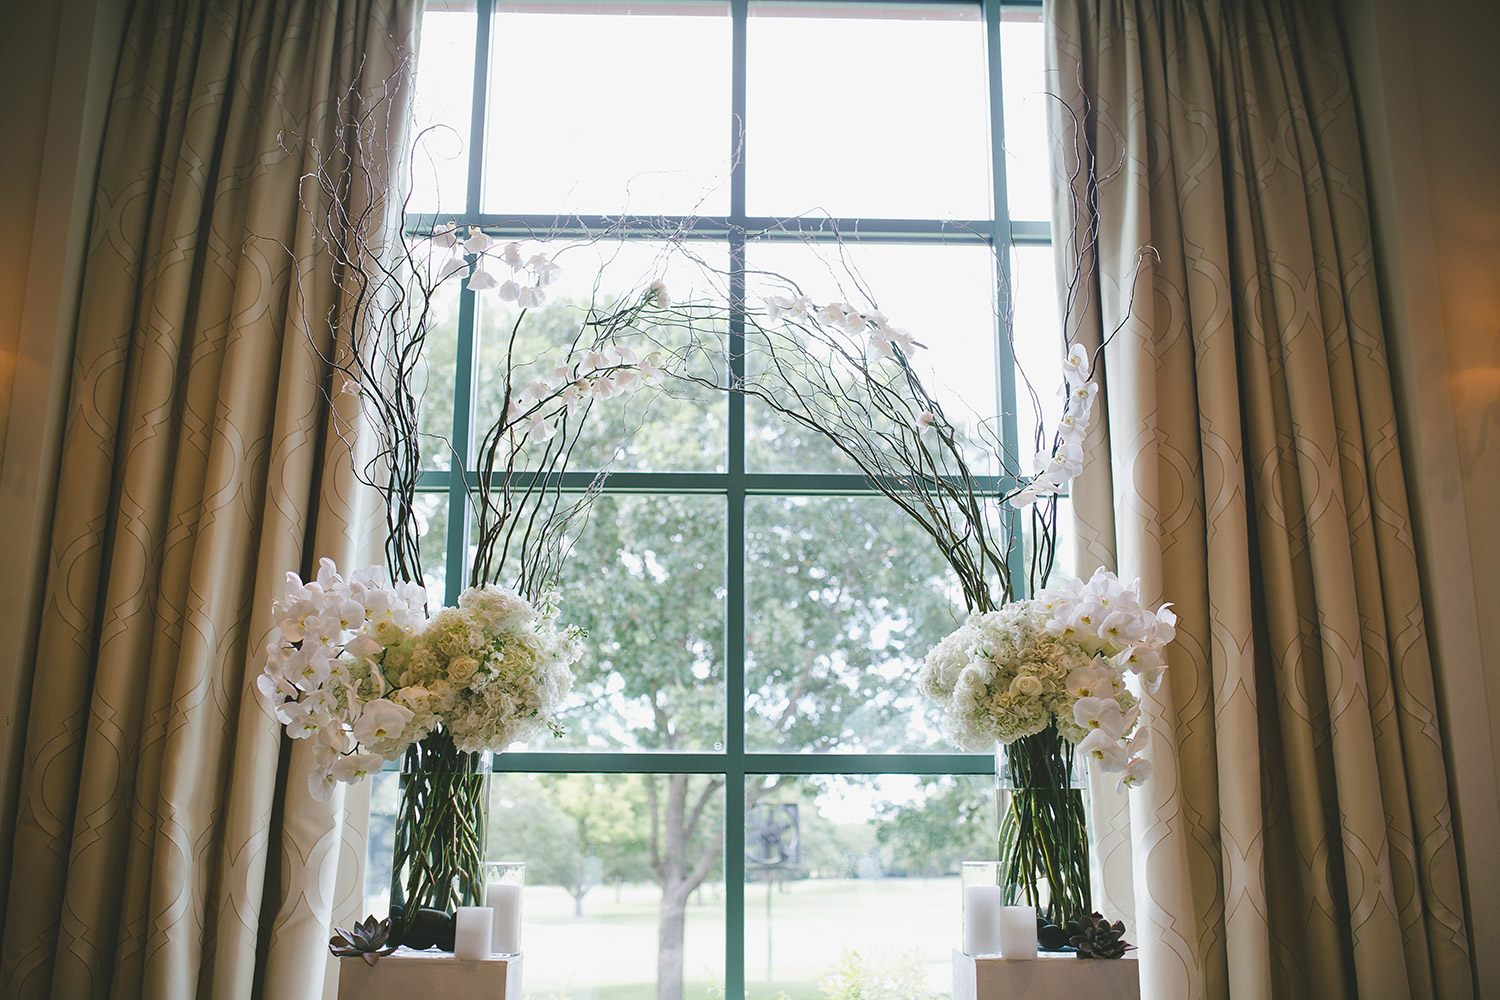 River Crest Country Clube Ceremony archway with white flowers, orchids, willow branches,  and white platforms